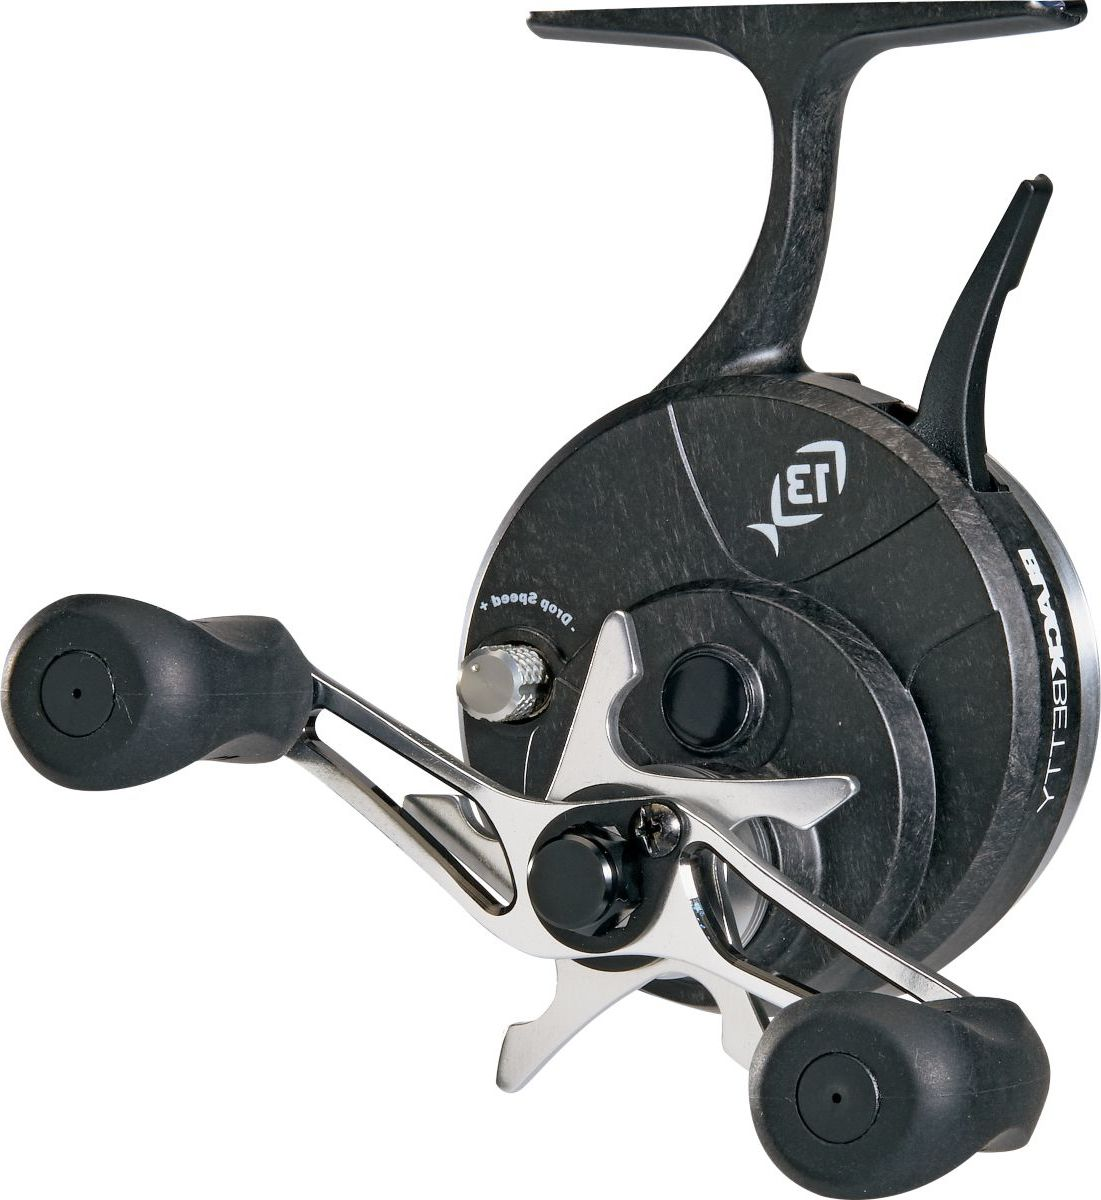 13 Fishing Black Betty FreeFall Ice Reel